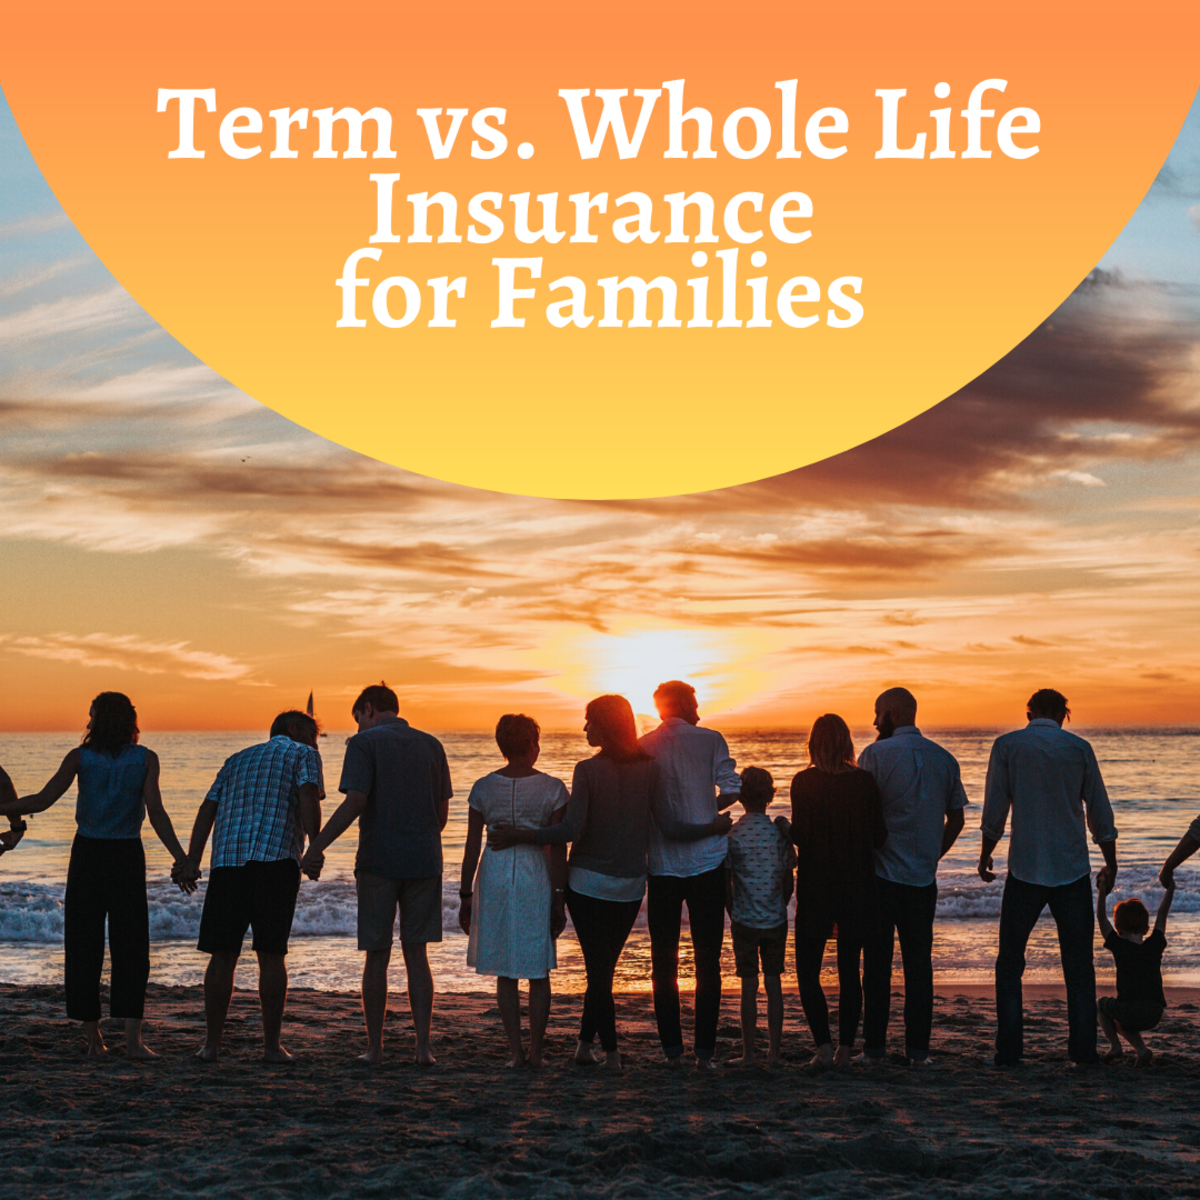 Comparing Term vs. Whole Life Insurance for Families